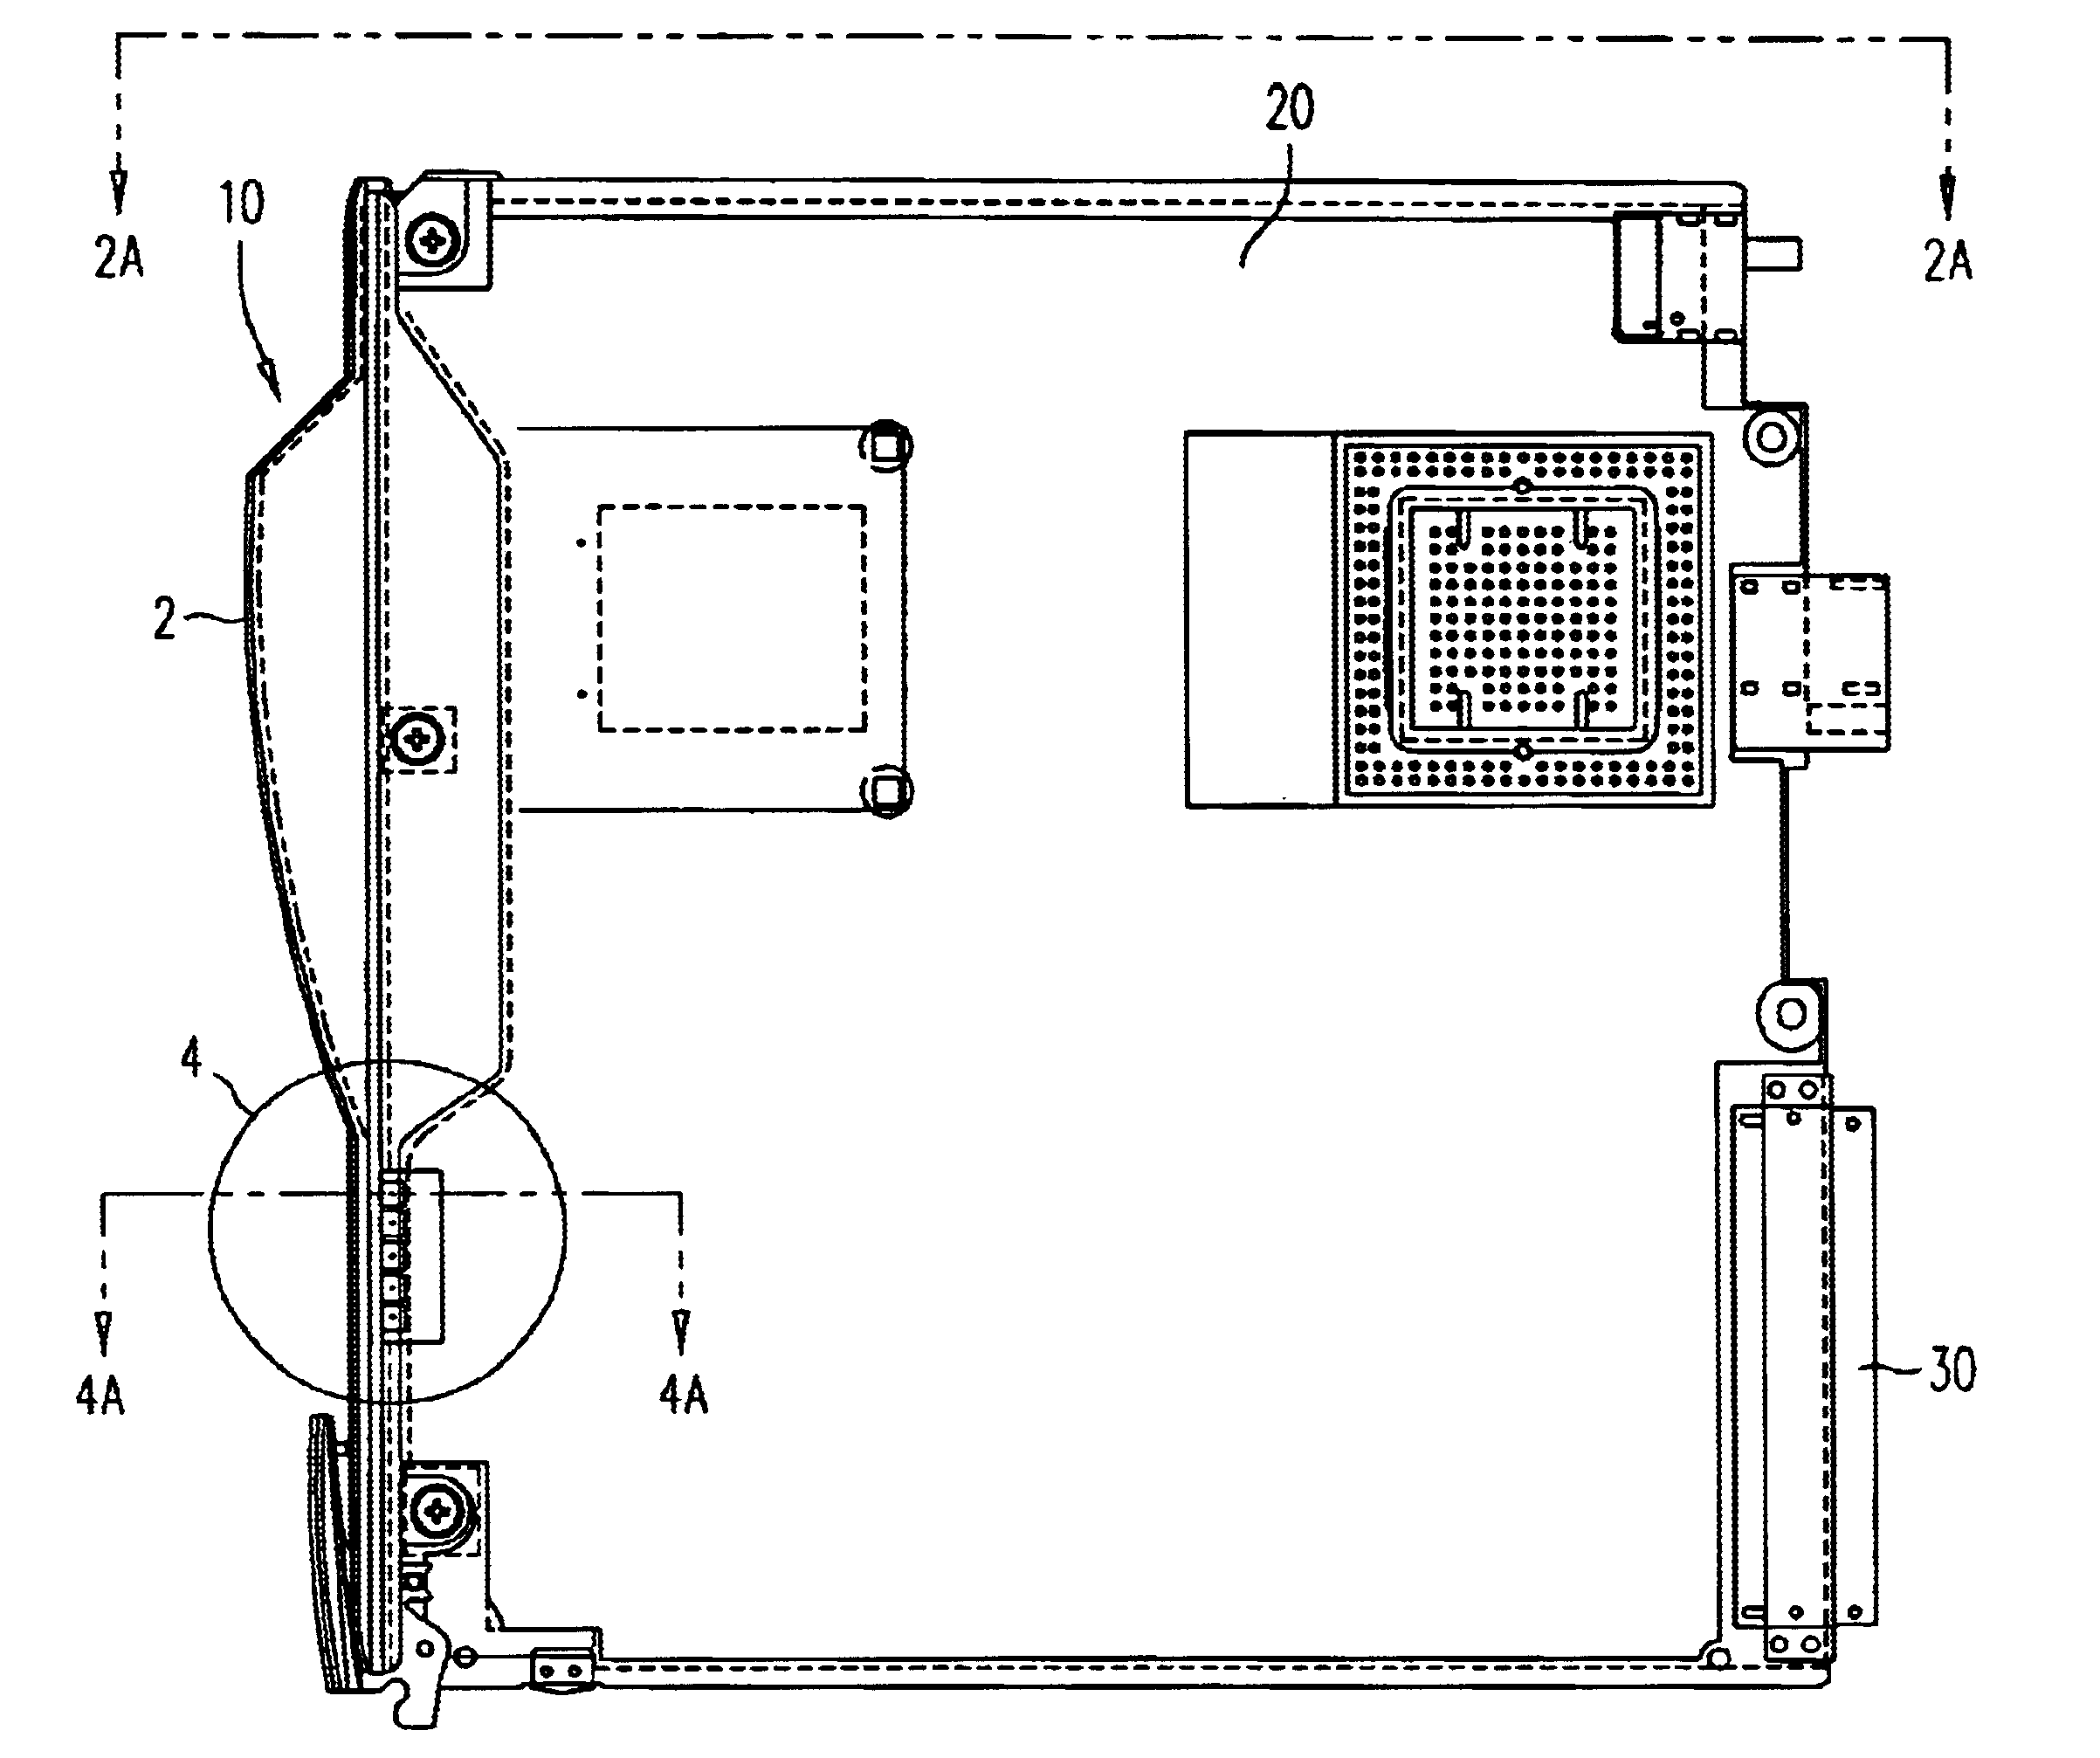 944c6197225 Patent US6692132 - Faceplate with integrated light-pipe - Google Patents